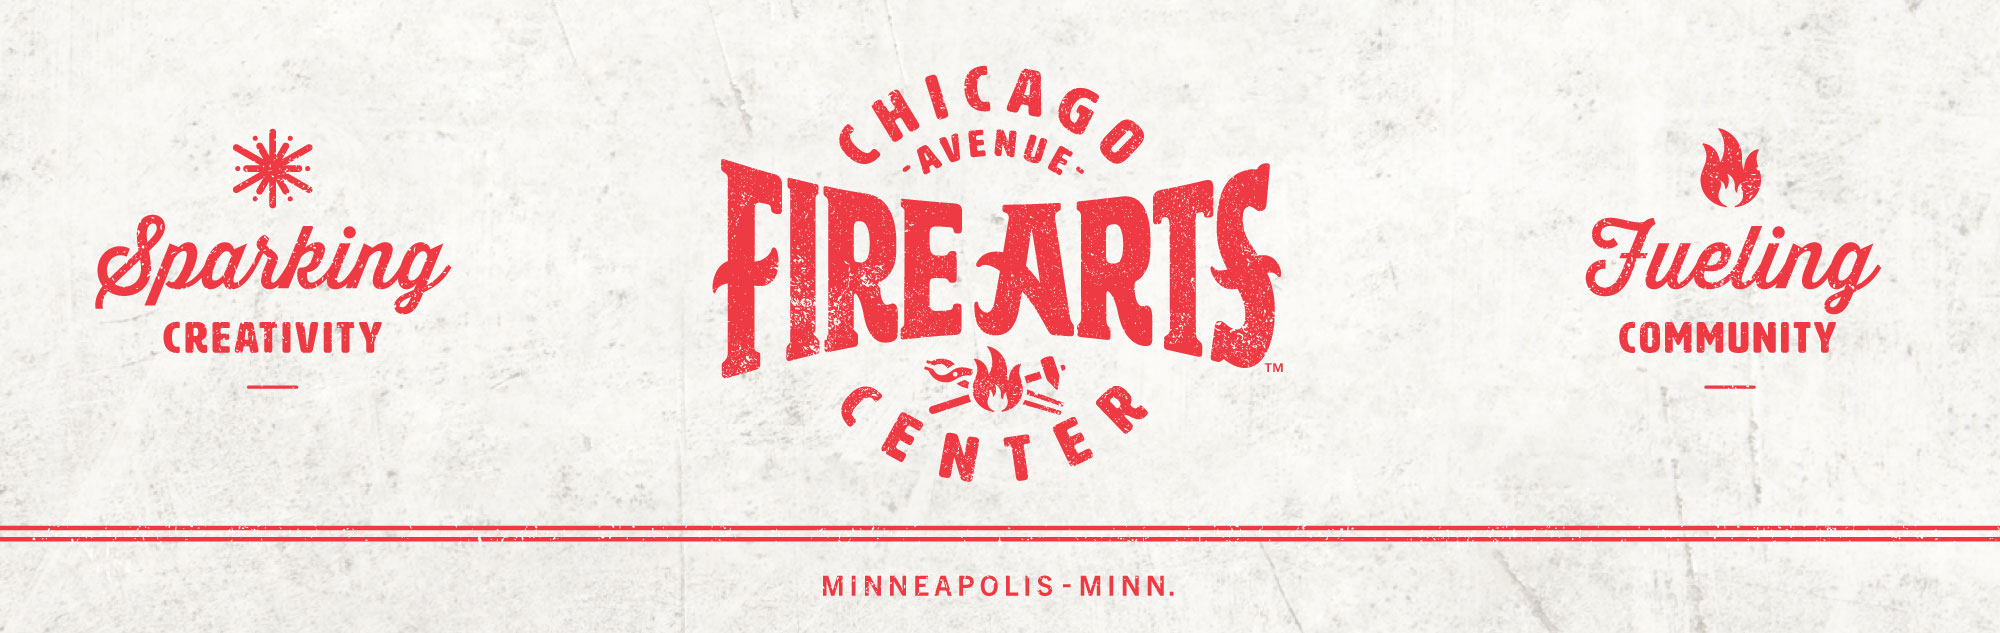 Chicago Avenue Fire Arts Center Logo Masthead